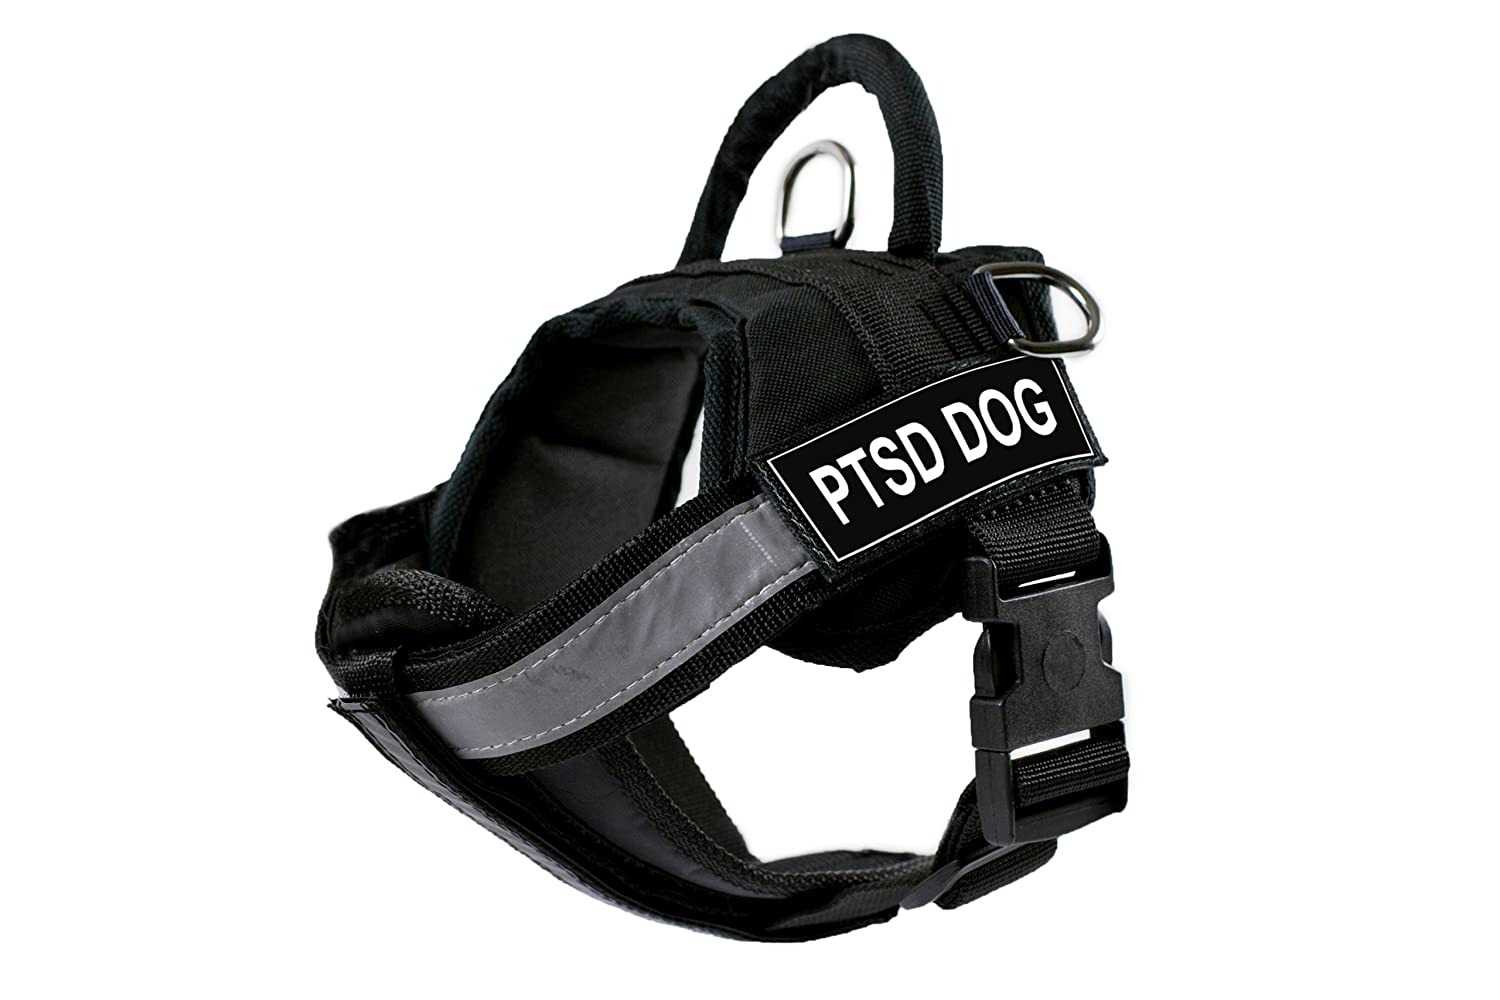 DT Works Harness with Padded Reflective Chest Straps, PTSD Dog, Black, X-Small, Fits Girth Size  21-Inch to 26-Inch